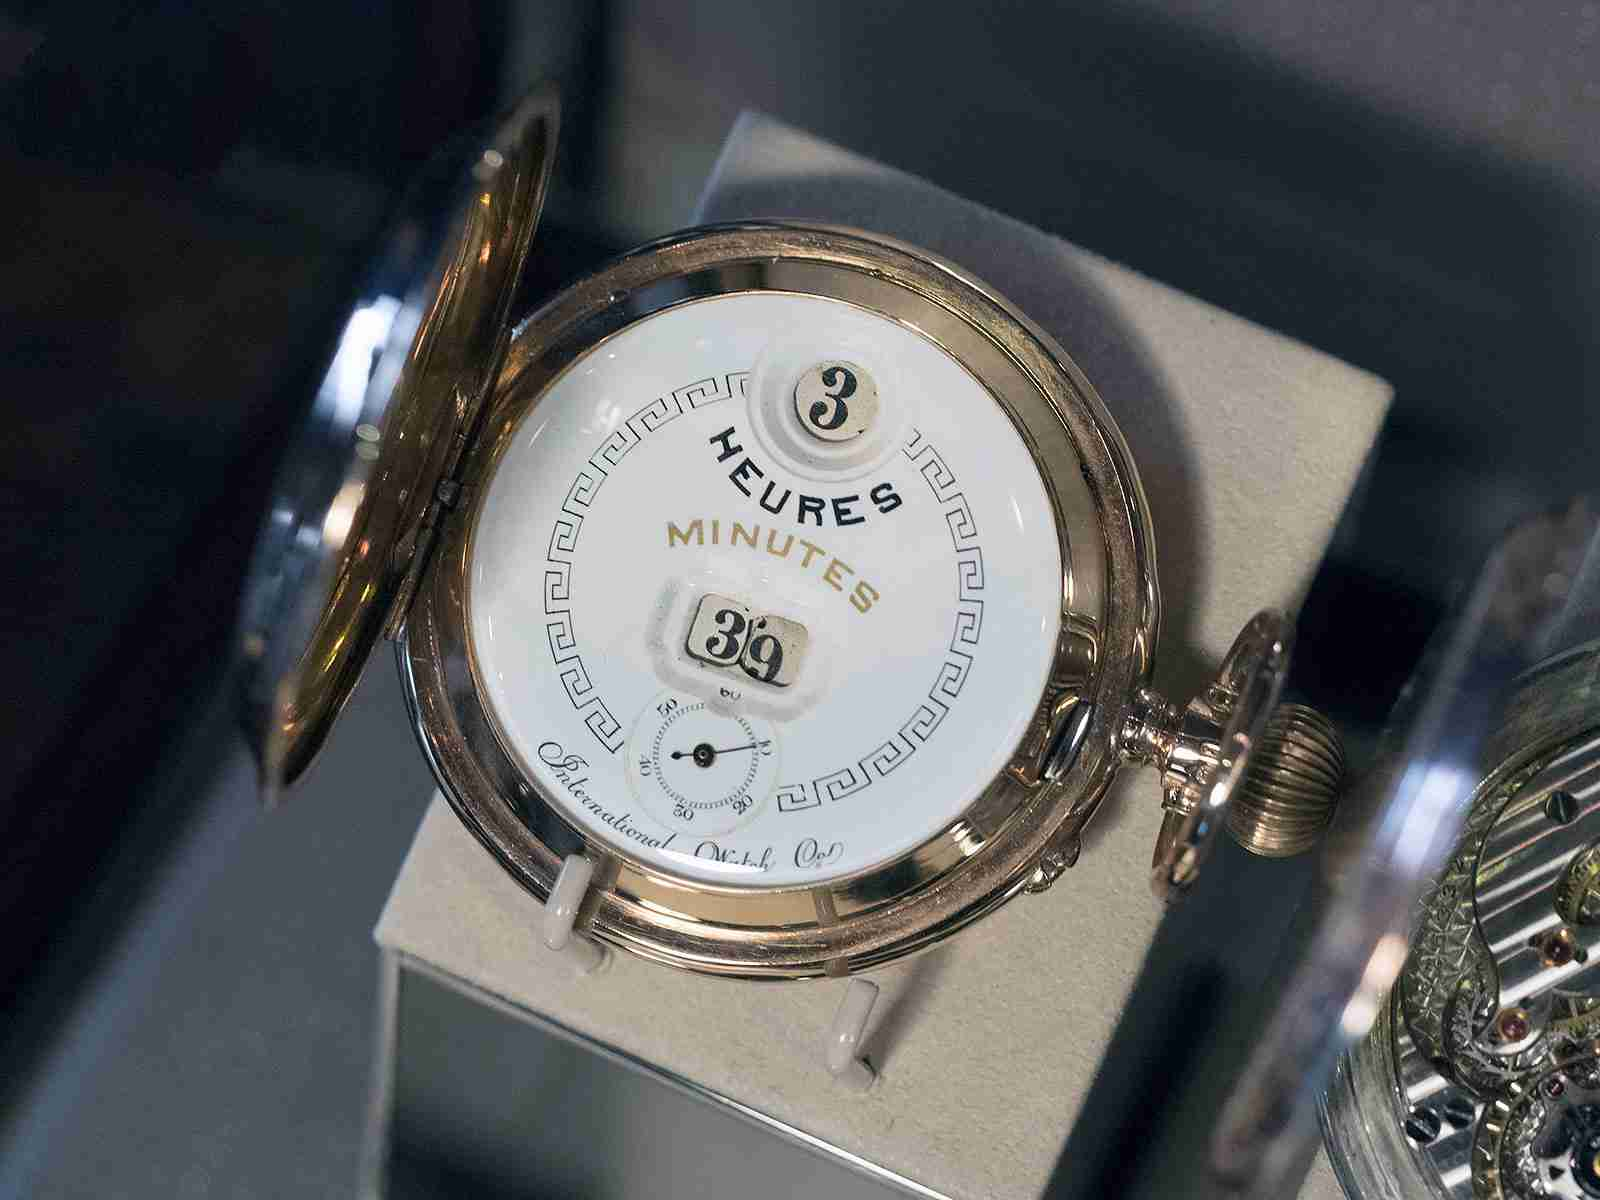 Replica IWC Tribute To Pallweber Edition 150 Annivesary Special Pocket Watch Review